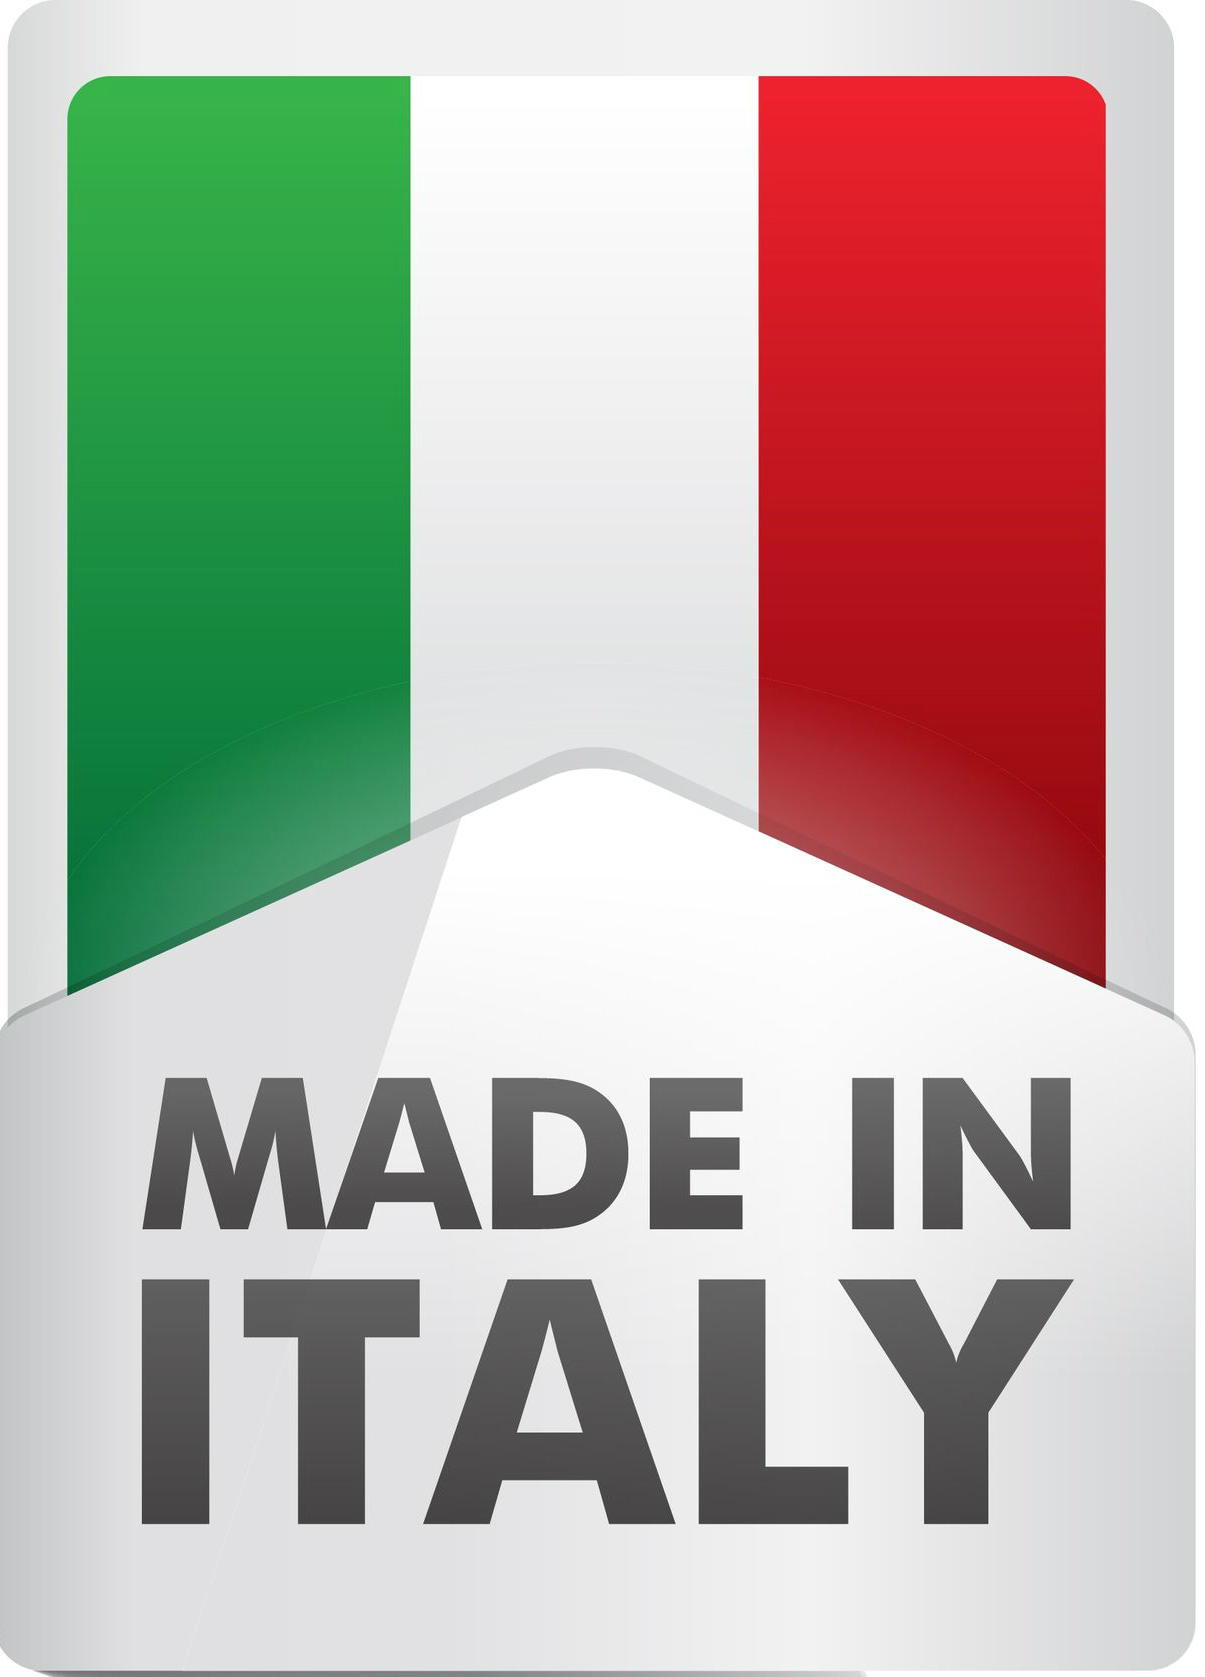 MADE IN ITALY LOGO-2